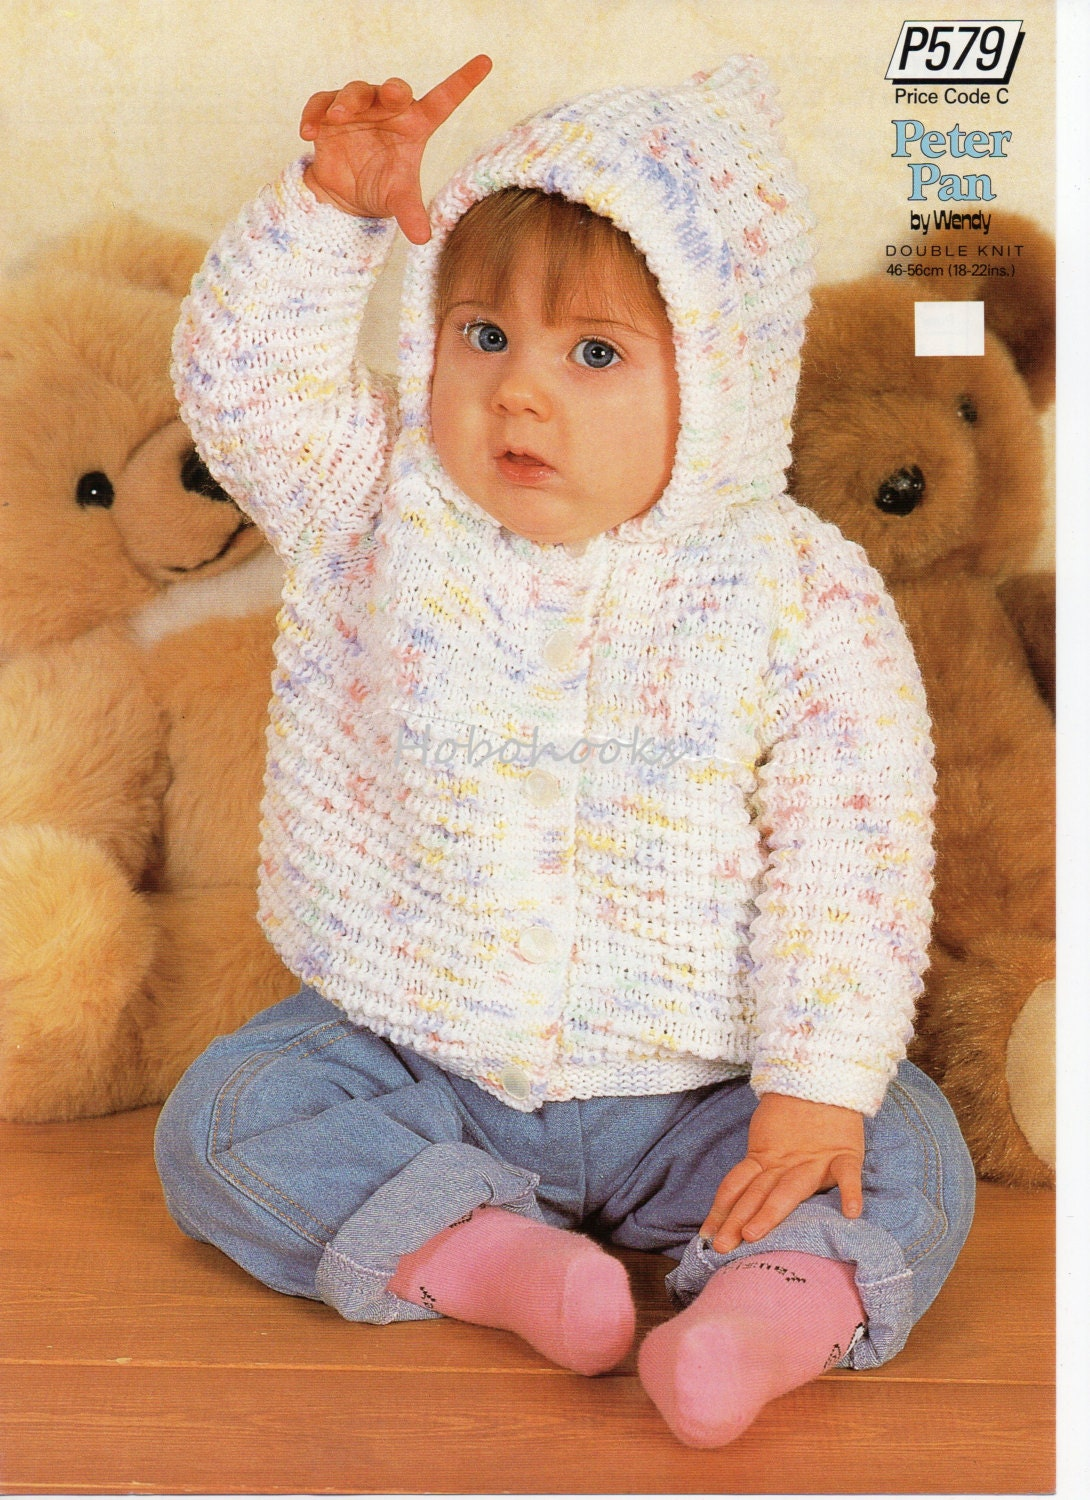 Knitting Pattern Hooded Jacket Toddler : Baby knitting pattern baby hooded jacket baby cardigan with